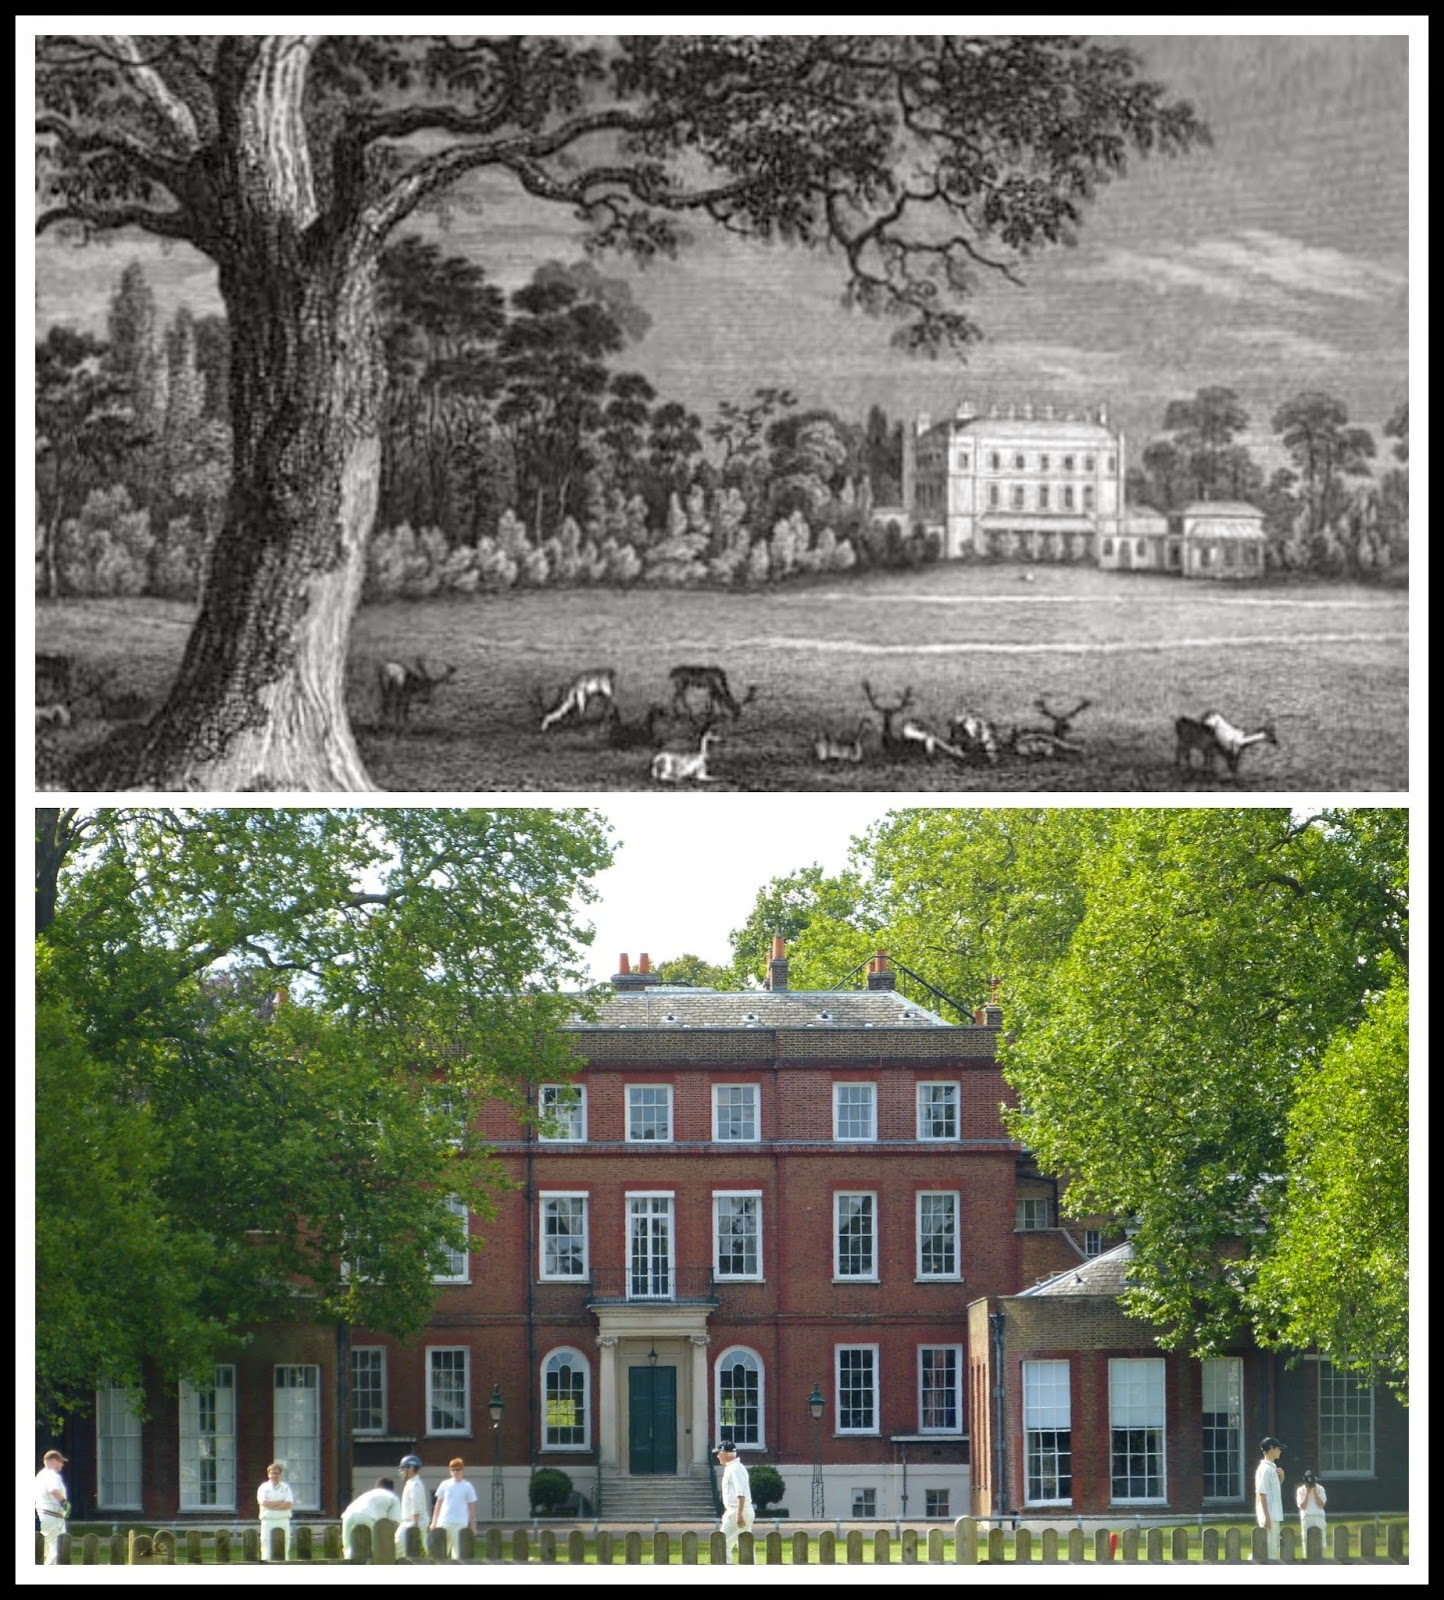 Top: Bushy House from History of the life and reign   of William the Fourth (1837) by R Huish   Bottom: The house in Bushy Park today © Andrew Knowles